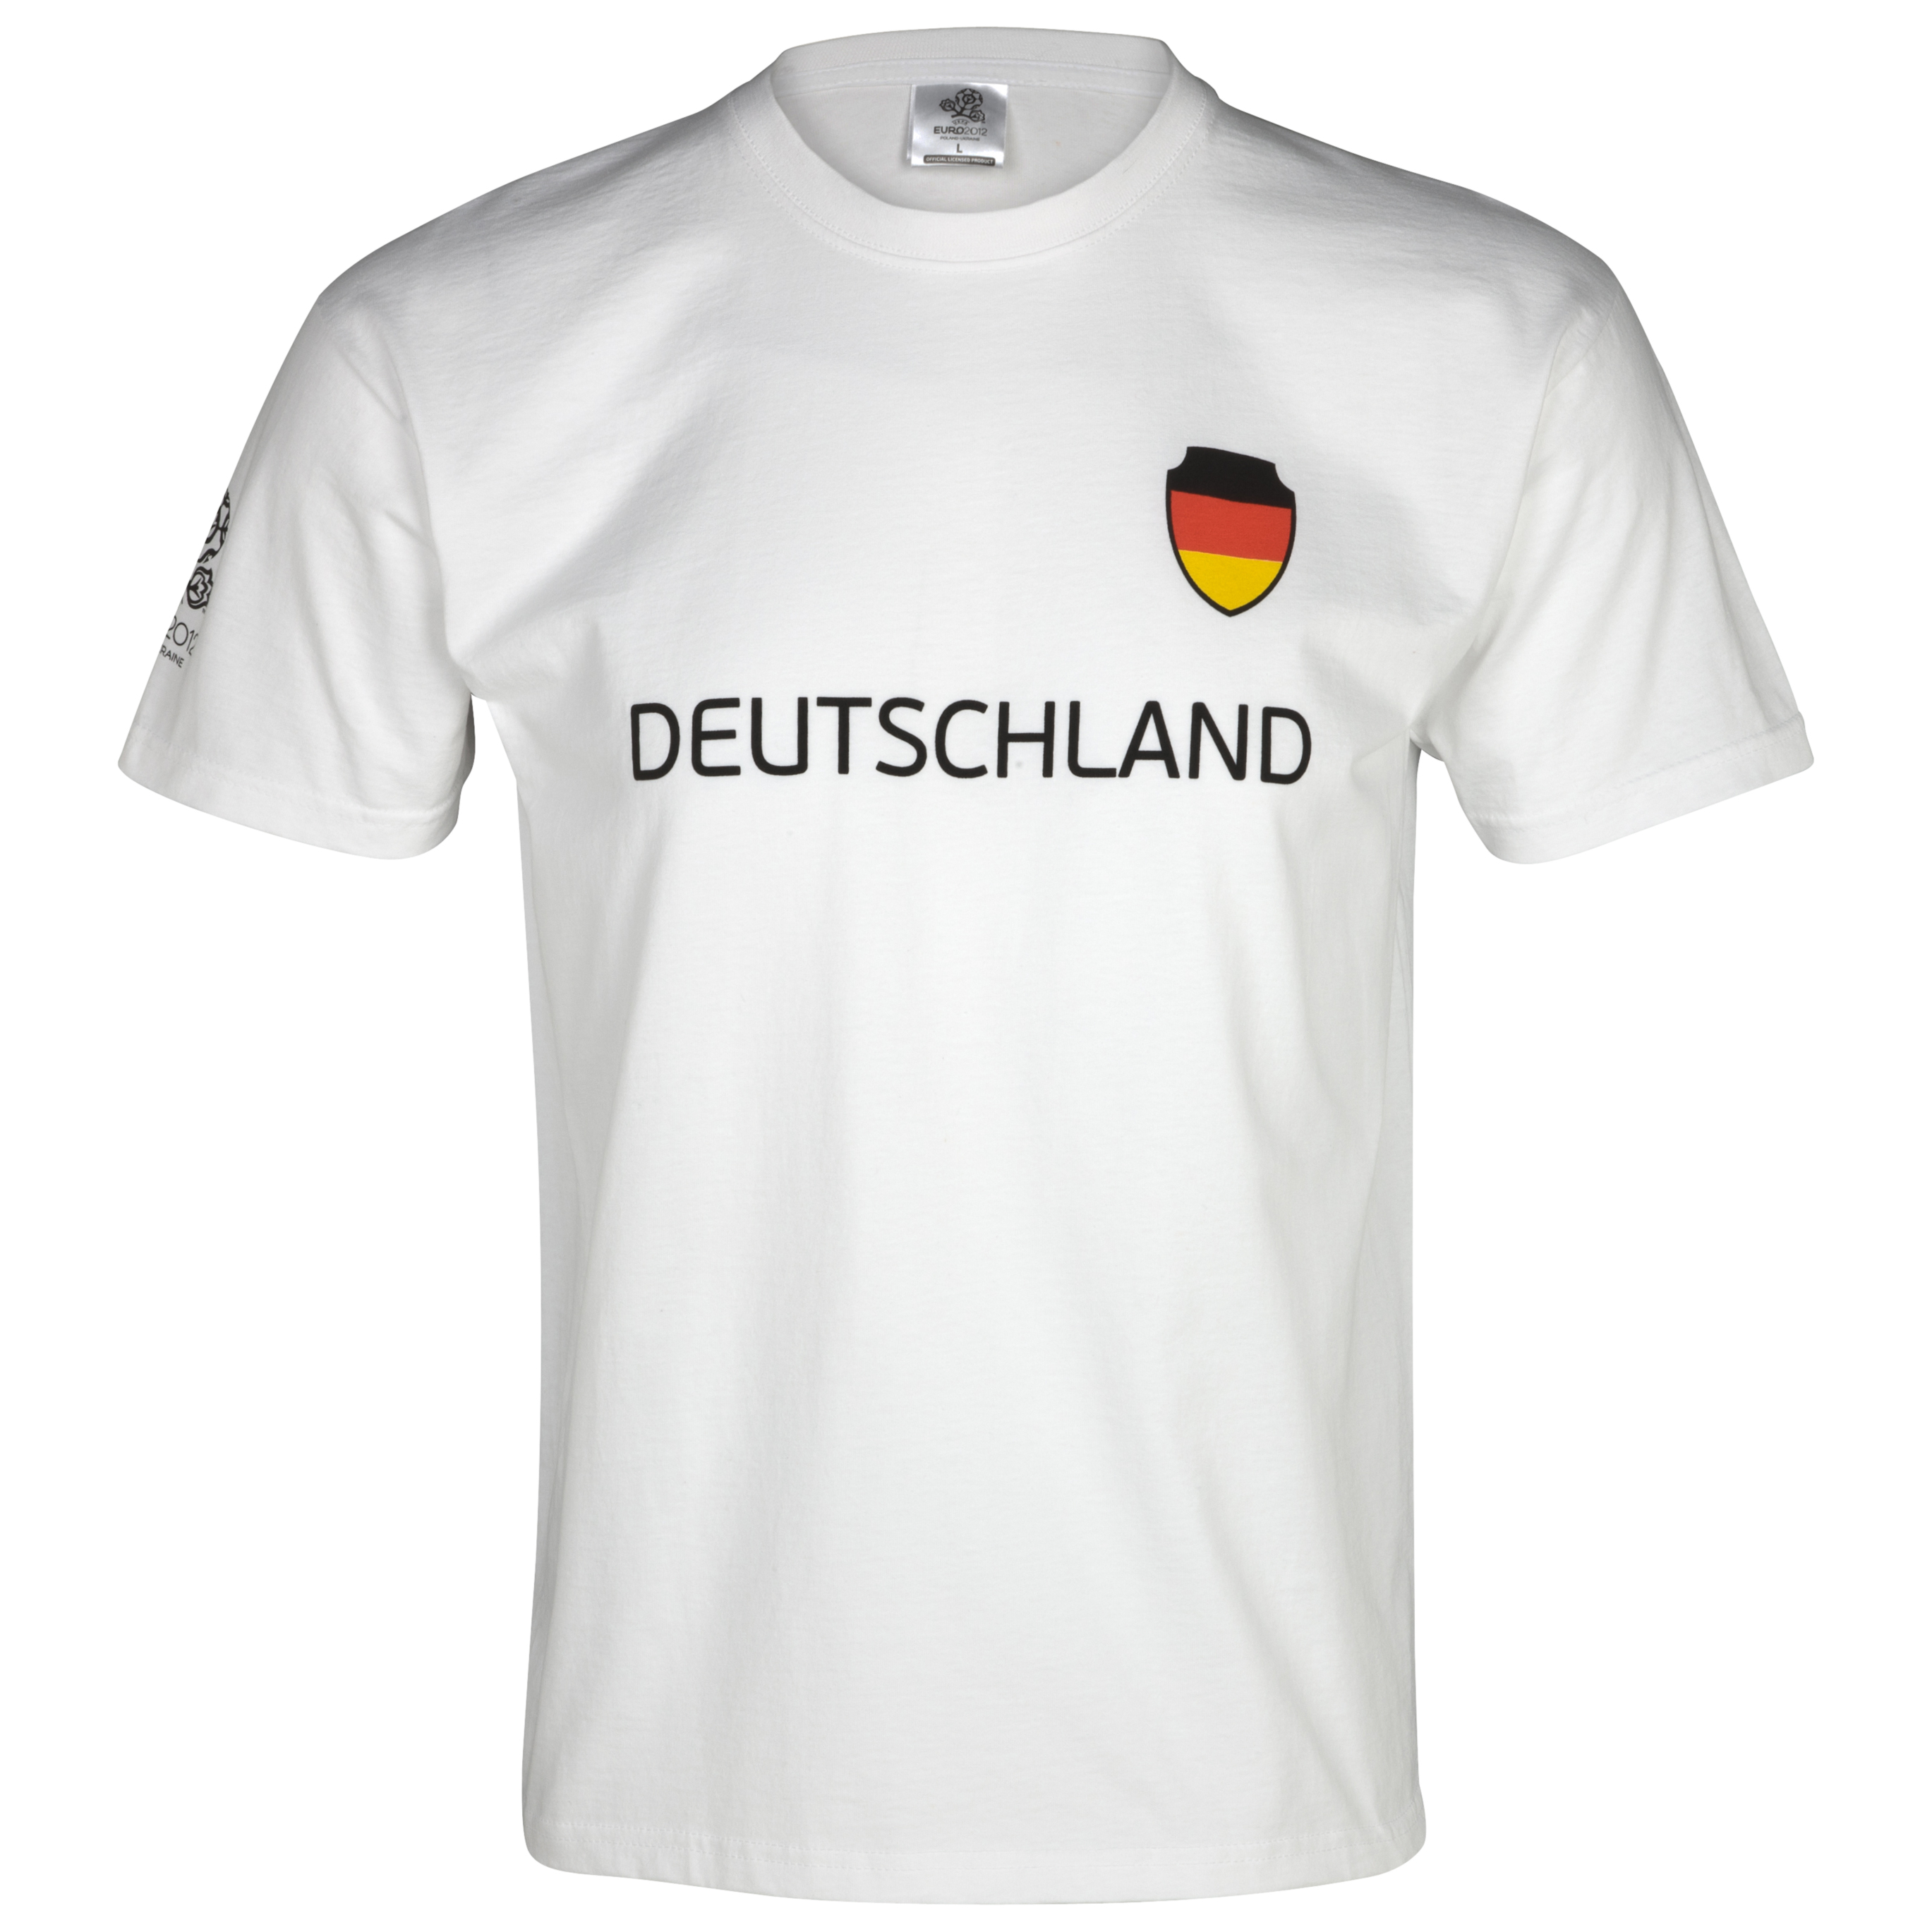 Euro 2012 Germany T-Shirt - White/Black